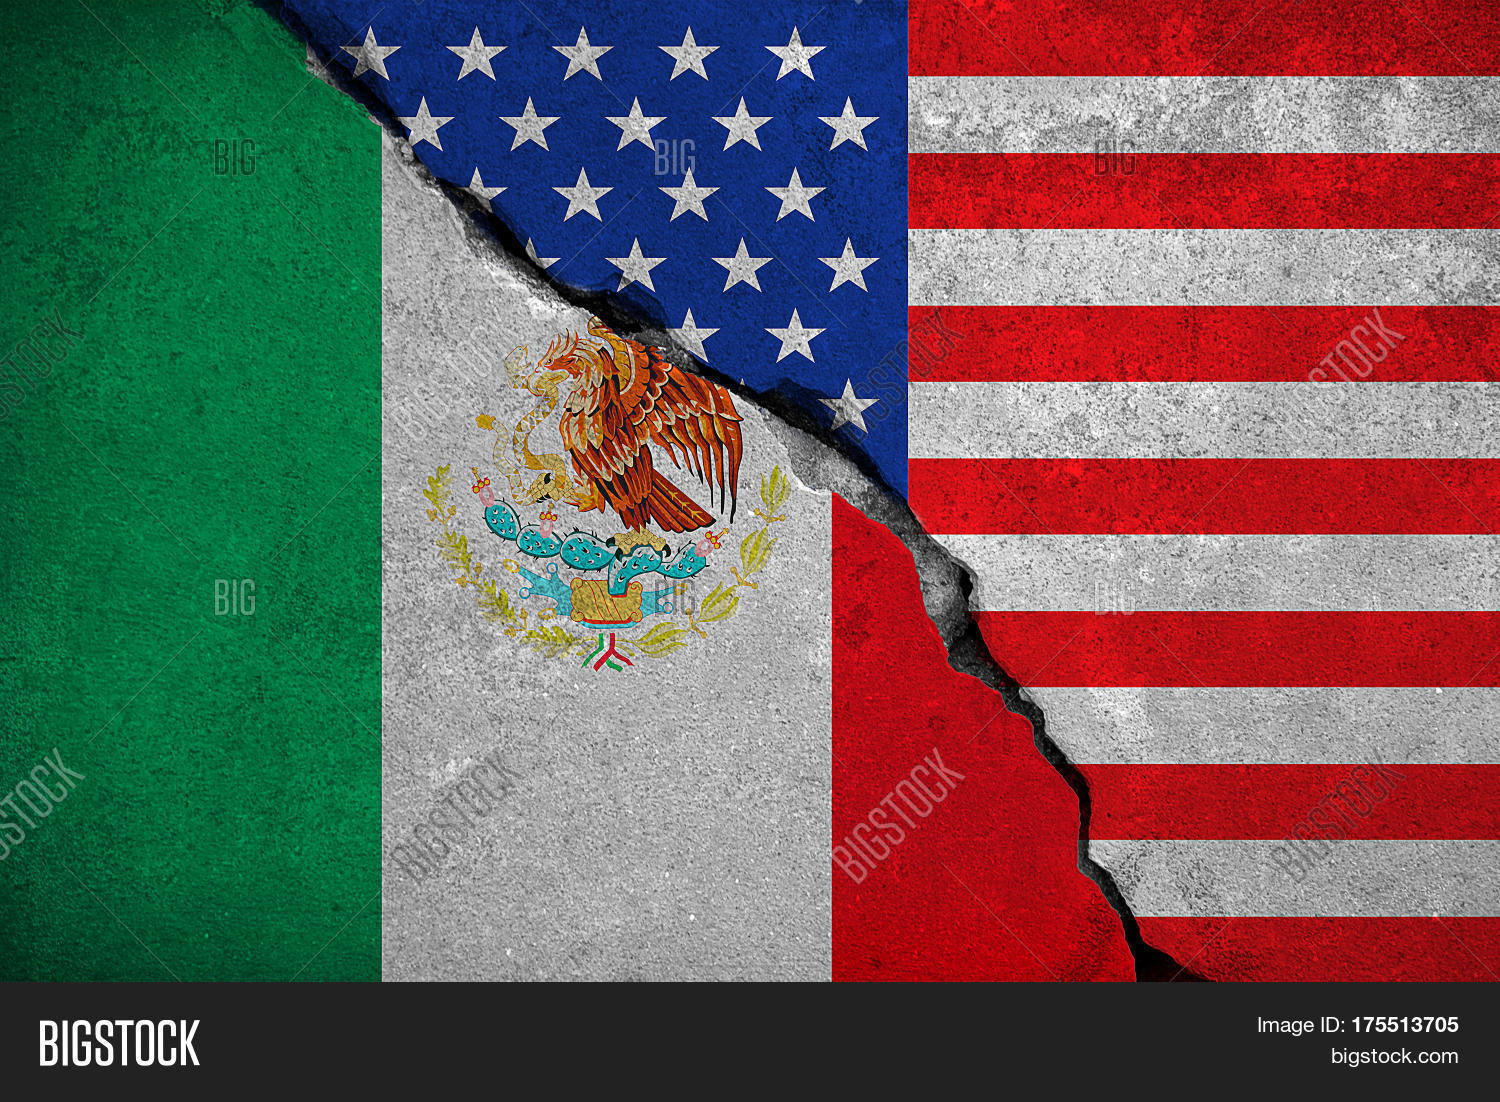 mexico flag on broken brick wall image u0026 photo bigstock